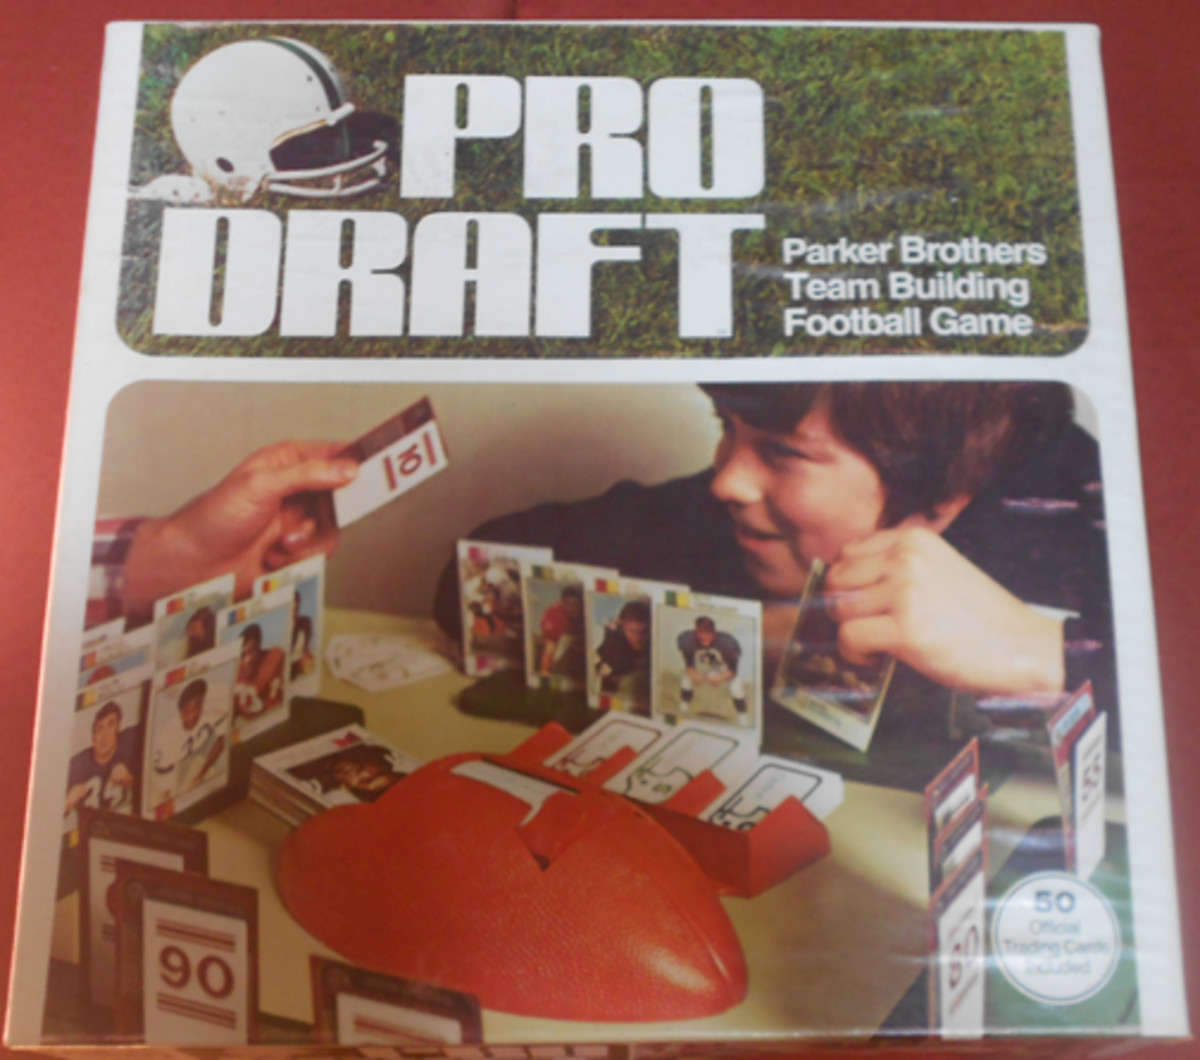 The picture on the 1974 Parker Brothers Pro Draft game box shows 1973 Topps cards. Some say an early version of the game included 50 cards from '73; even so, no cards from that year show any variations that would identify them as Parker Brothers cards, so none from '73 are classified as such.